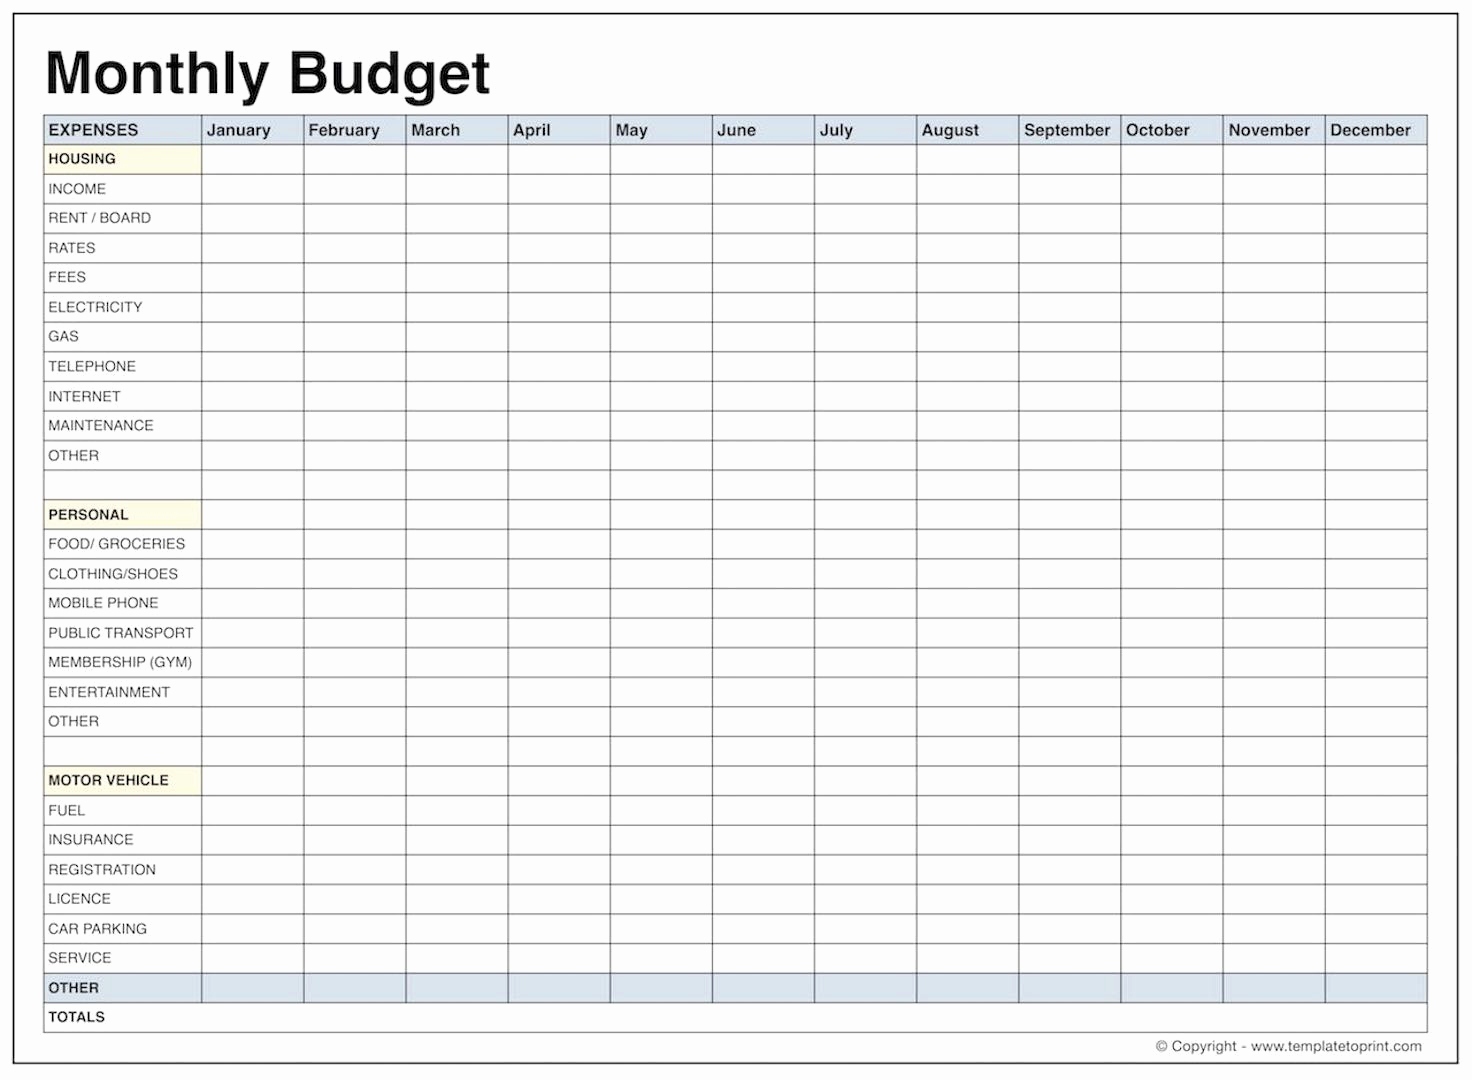 Monthly Budget Spreadsheet Template Inspirational Blank Monthly Bud Template Pdf Samplebusinessresume